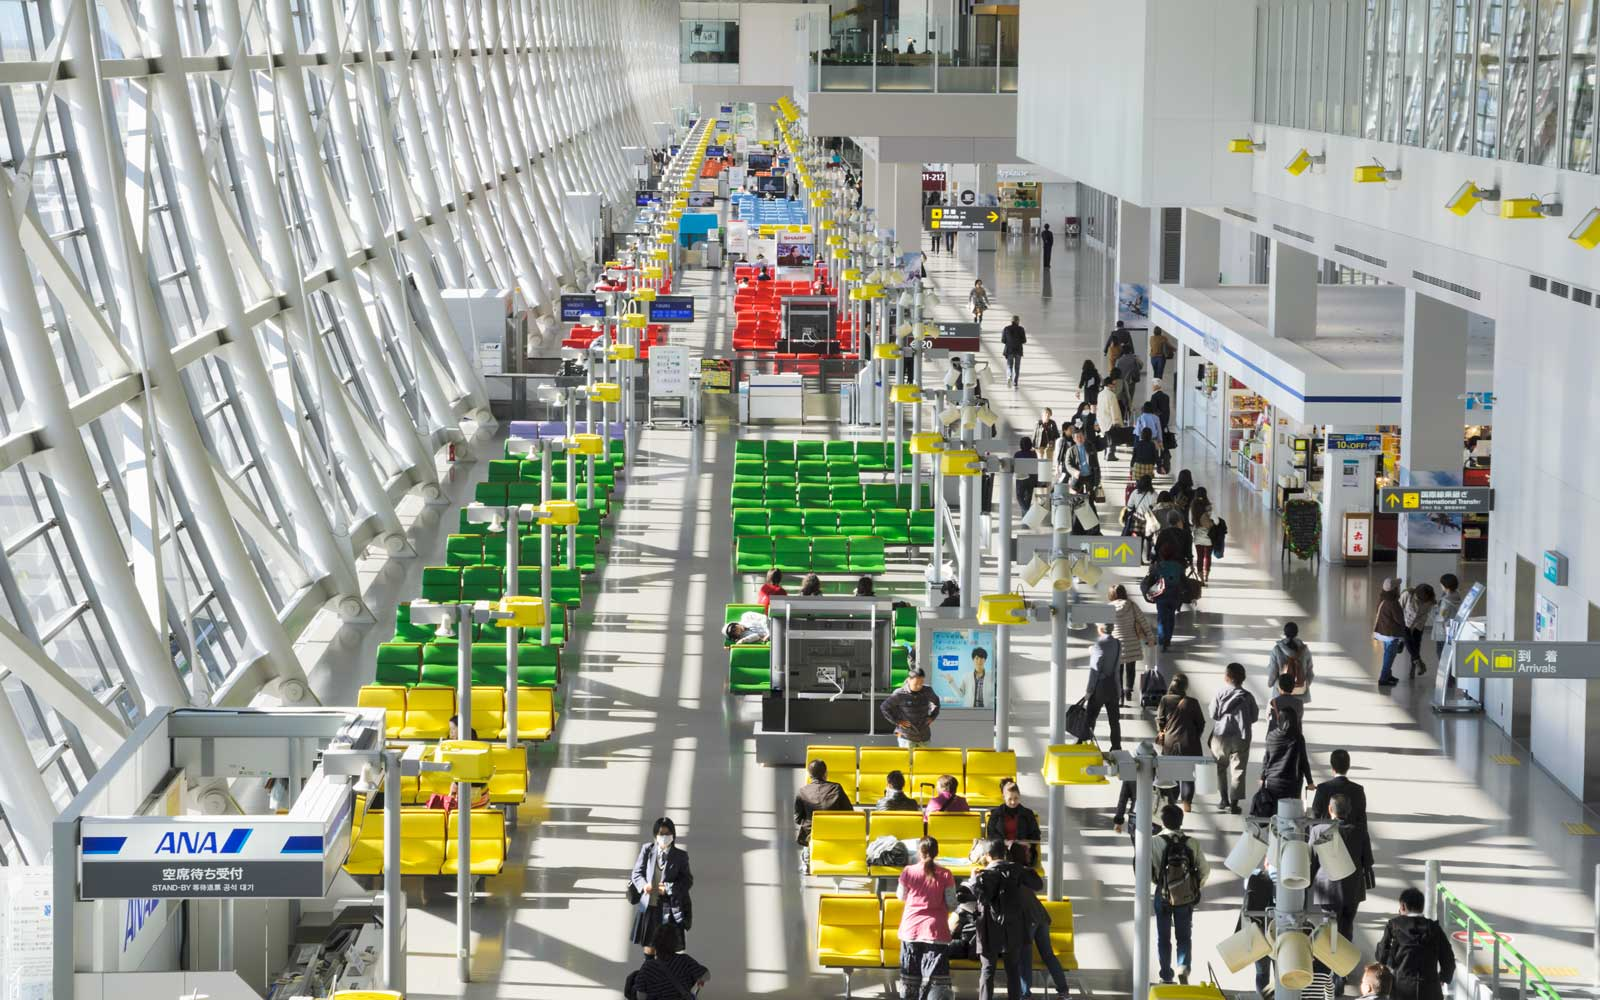 Patterns of brightly coloured seats in the busy departures area of Kansai Airport, near Osaka, Japan